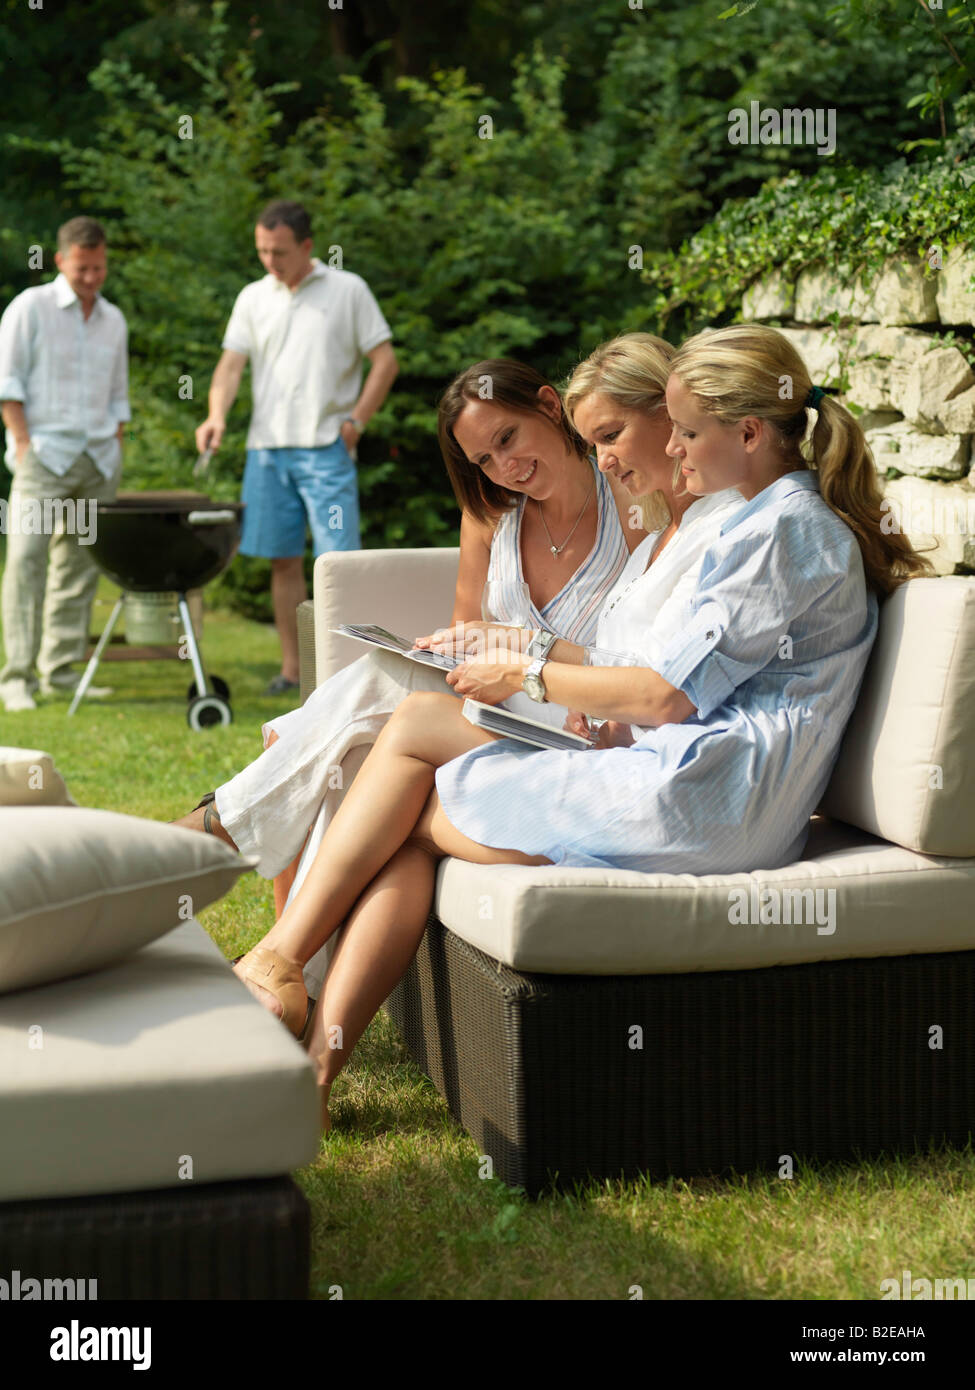 Three women looking at photo albums on couch - Stock Image